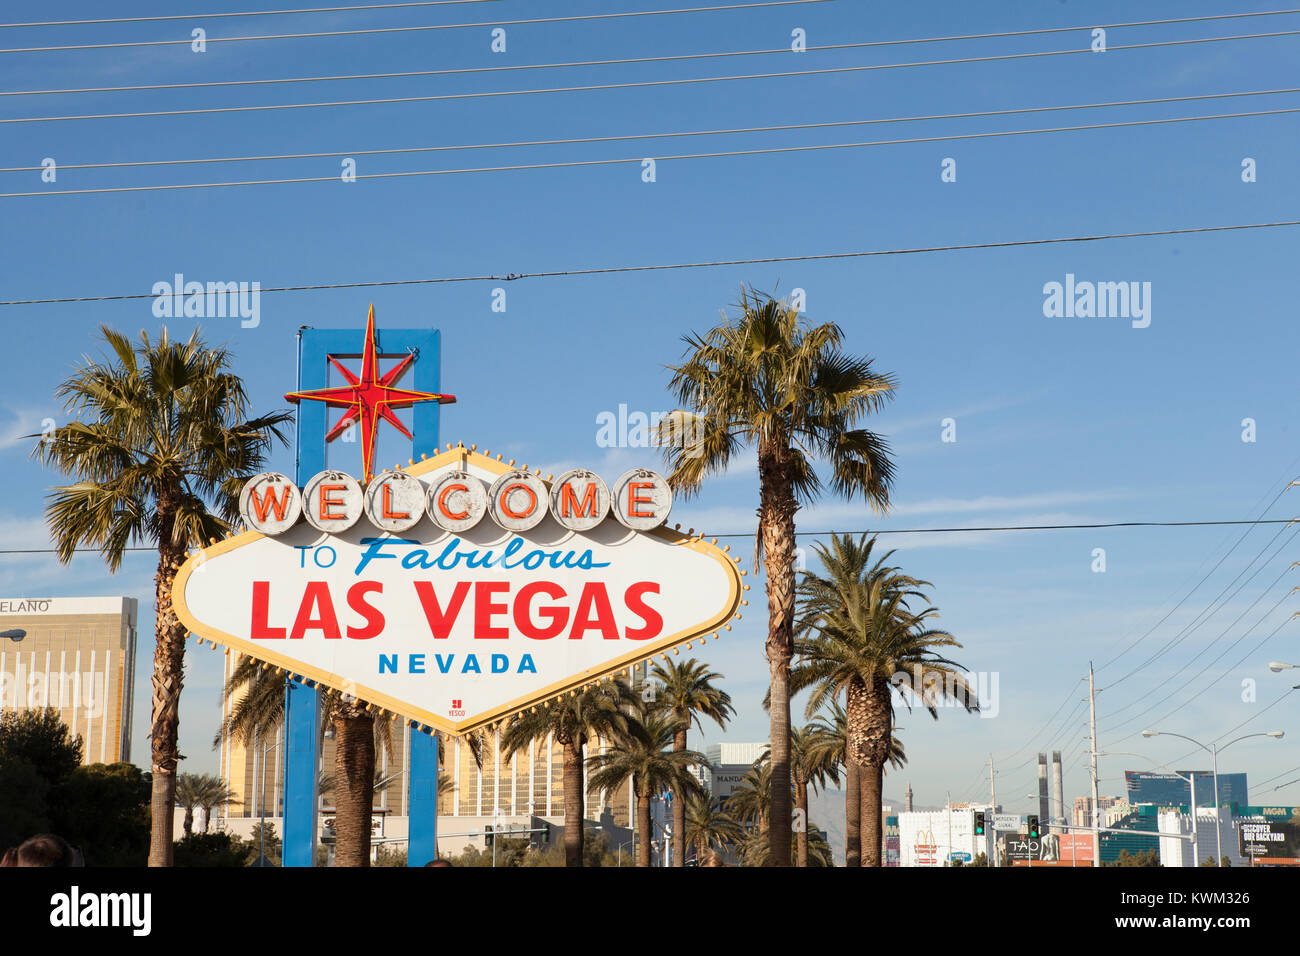 View of welcome to Las Vegas signboard against Sky in city - Stock Image